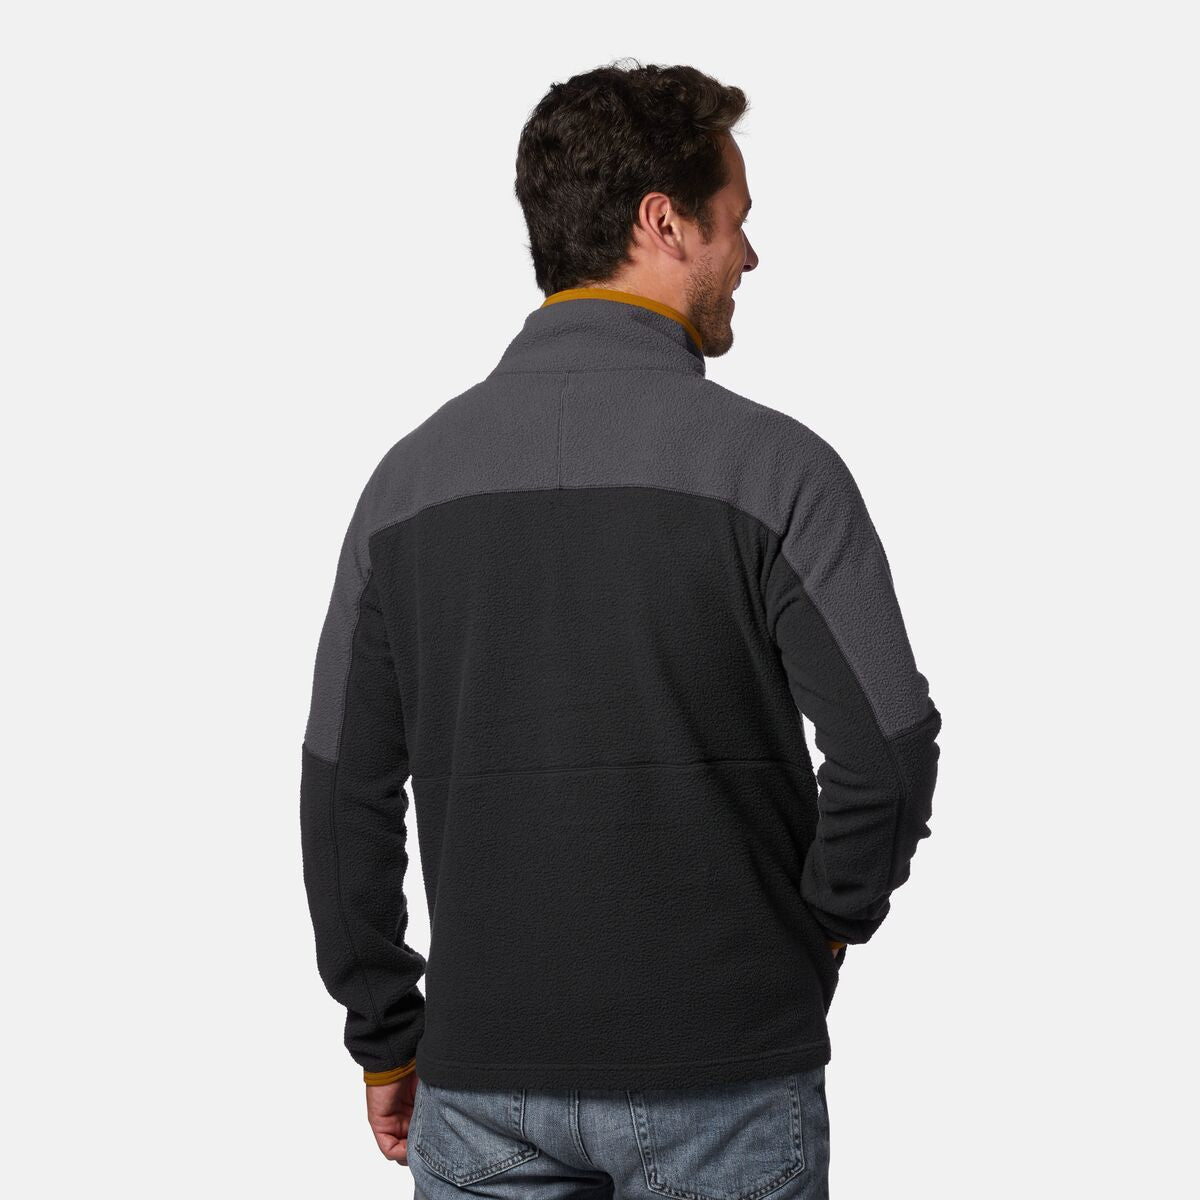 Cotopaxi Dorado Half-Zip Fleece Jacket for Men in Graphite/Black